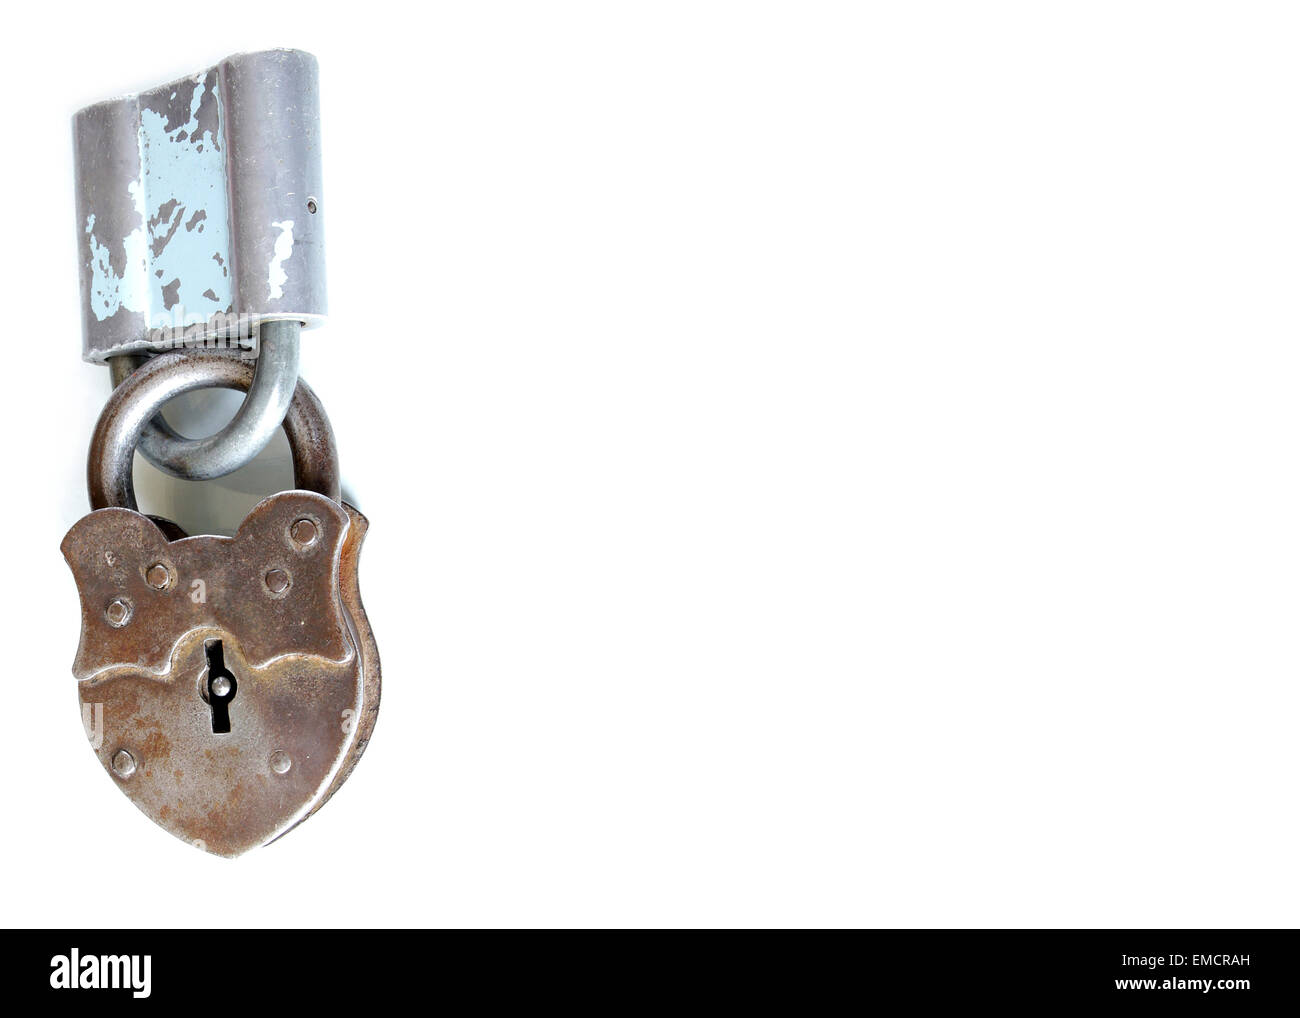 together locked vintage padlocks isolated on white background doing teamwork and counting on each other Stock Photo